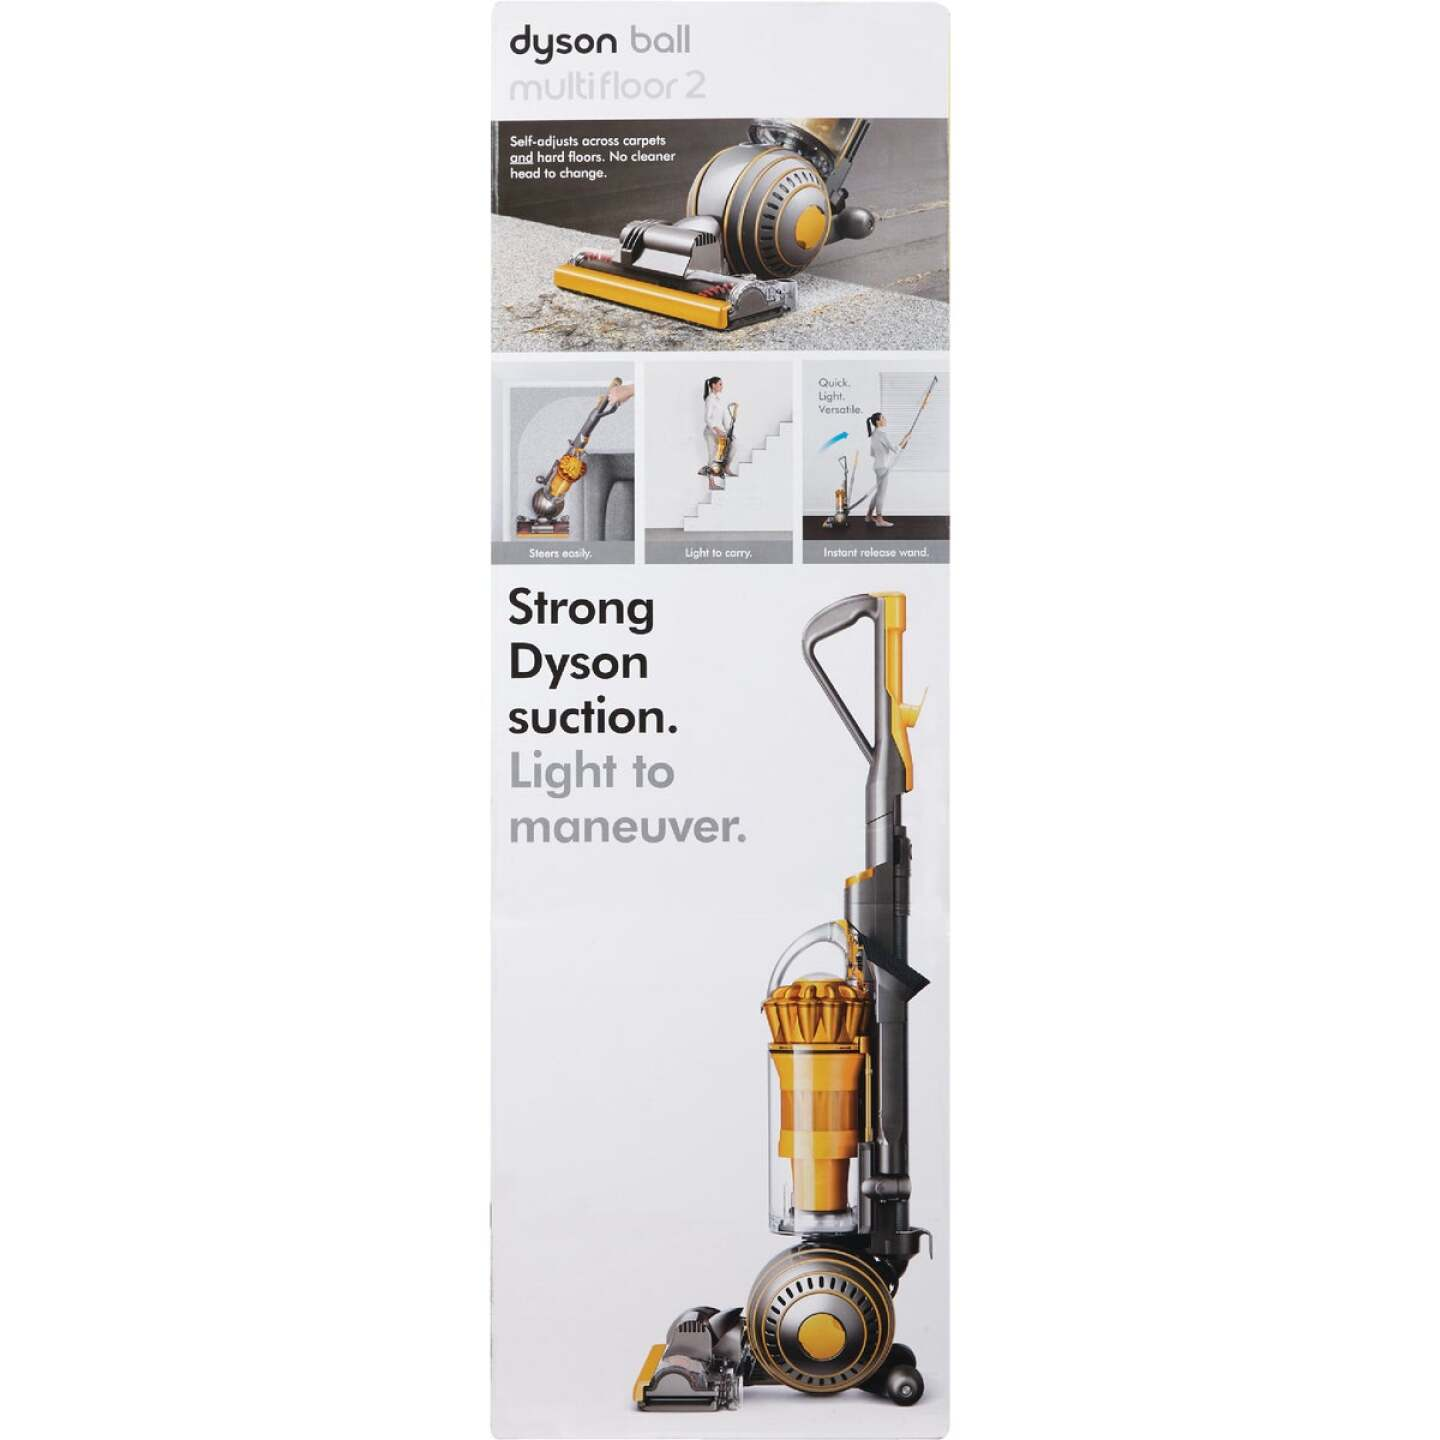 Dyson Ball Multi Floor 2 Bagless Upright Vacuum Cleaner Image 2